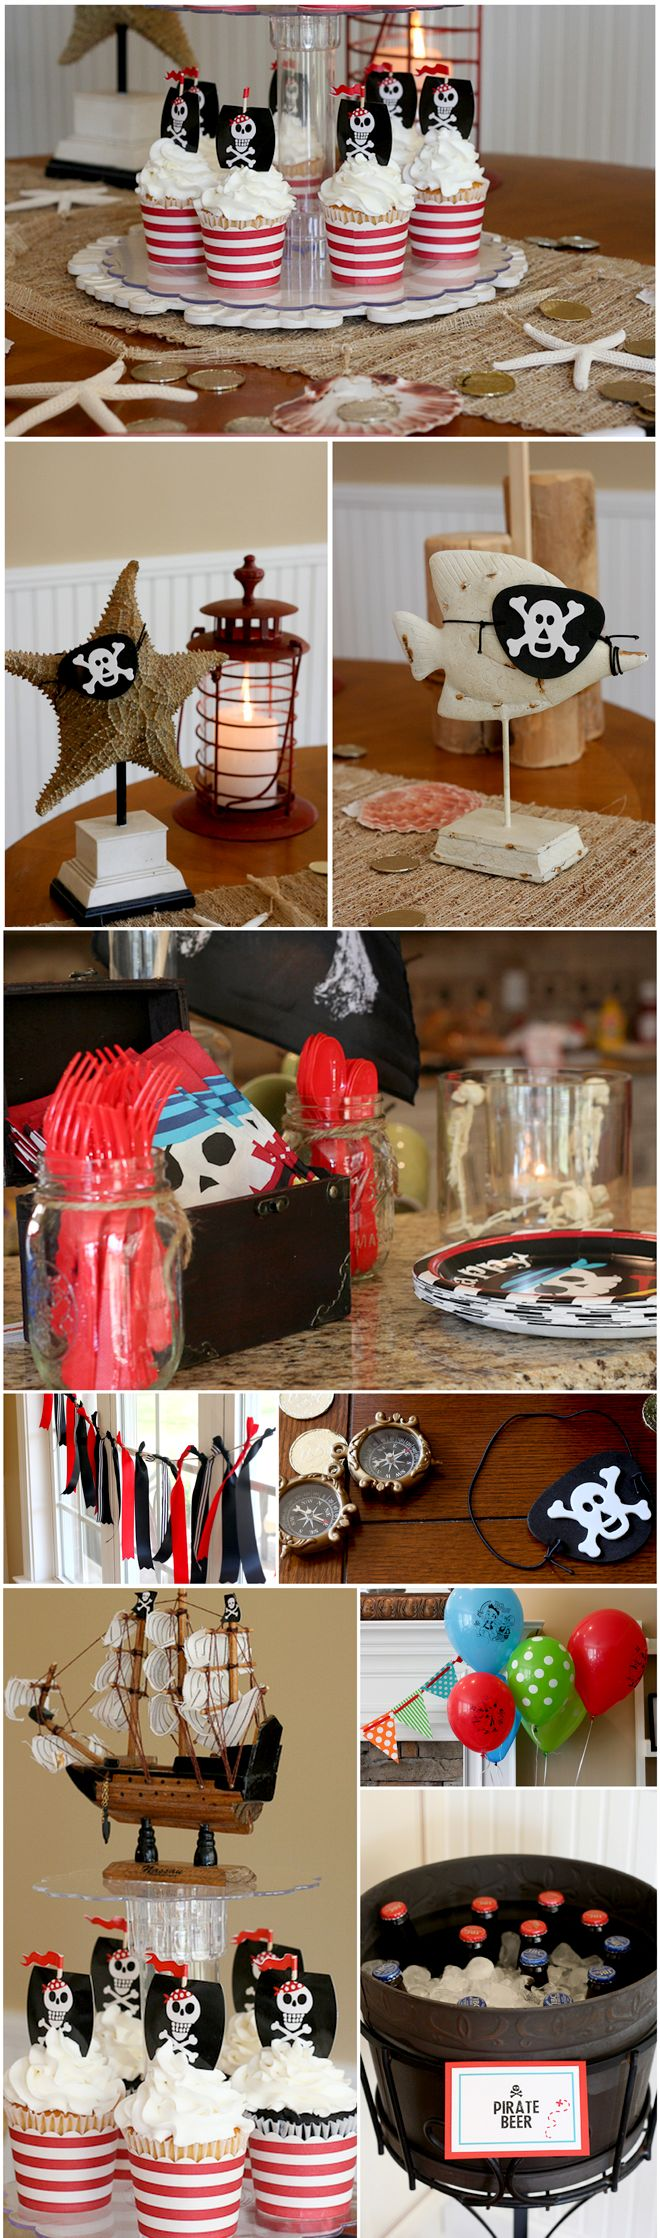 pirate party ideas